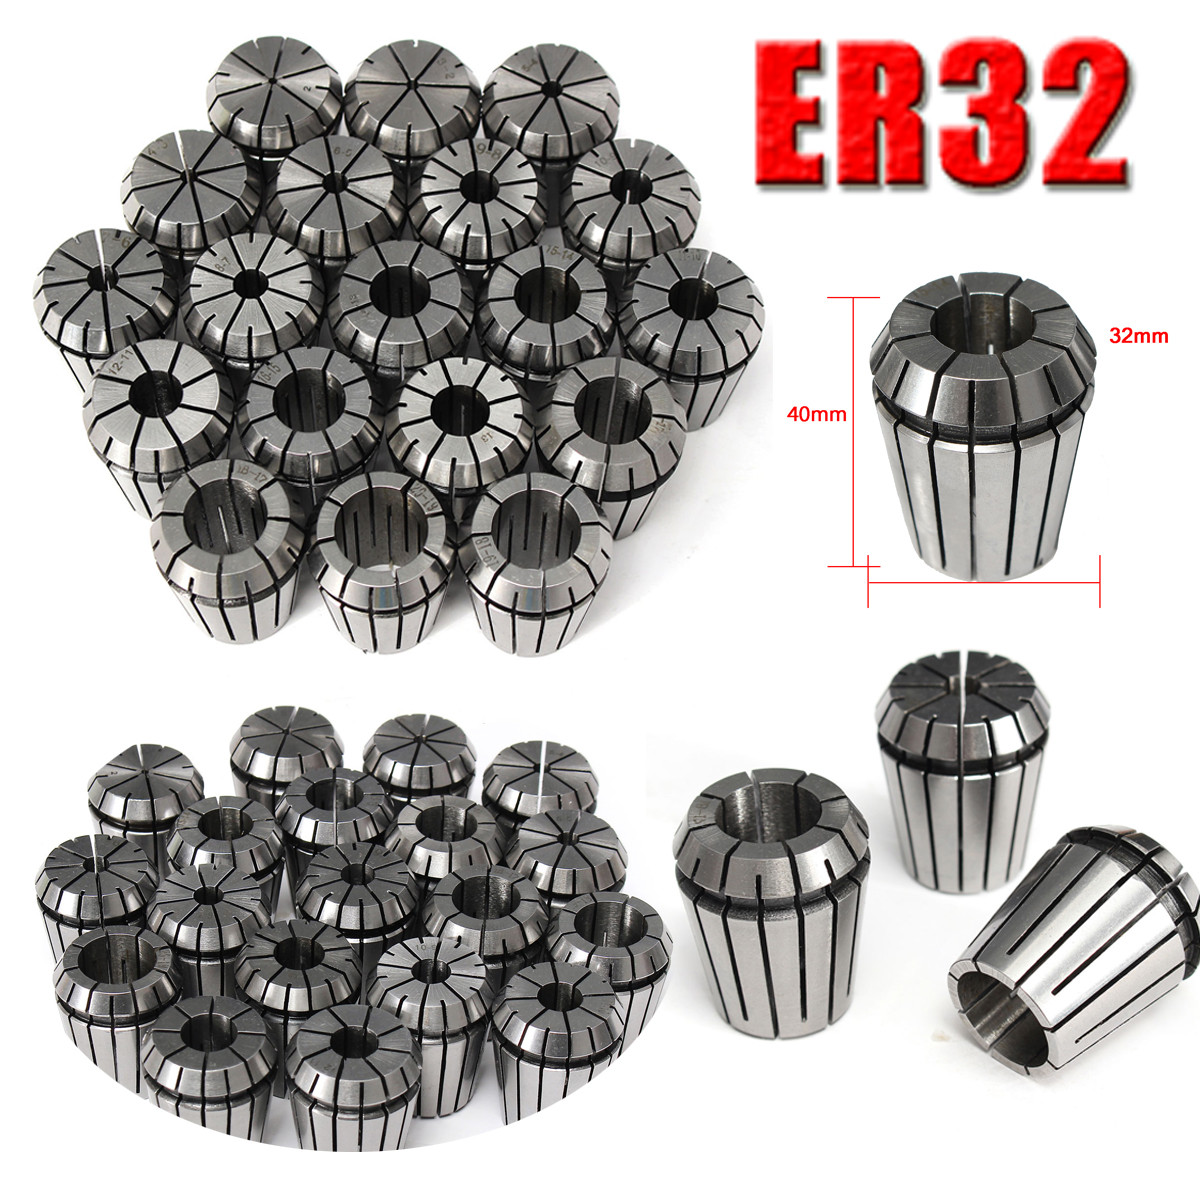 19pcs ER32 Collet Chuck Metric Precision 2-20mm For CNC Chuck Milling Engraving Tools Machine Tools Accessories Milling Cutter er32 16 high precision spring collect chuck cnc milling machine tools